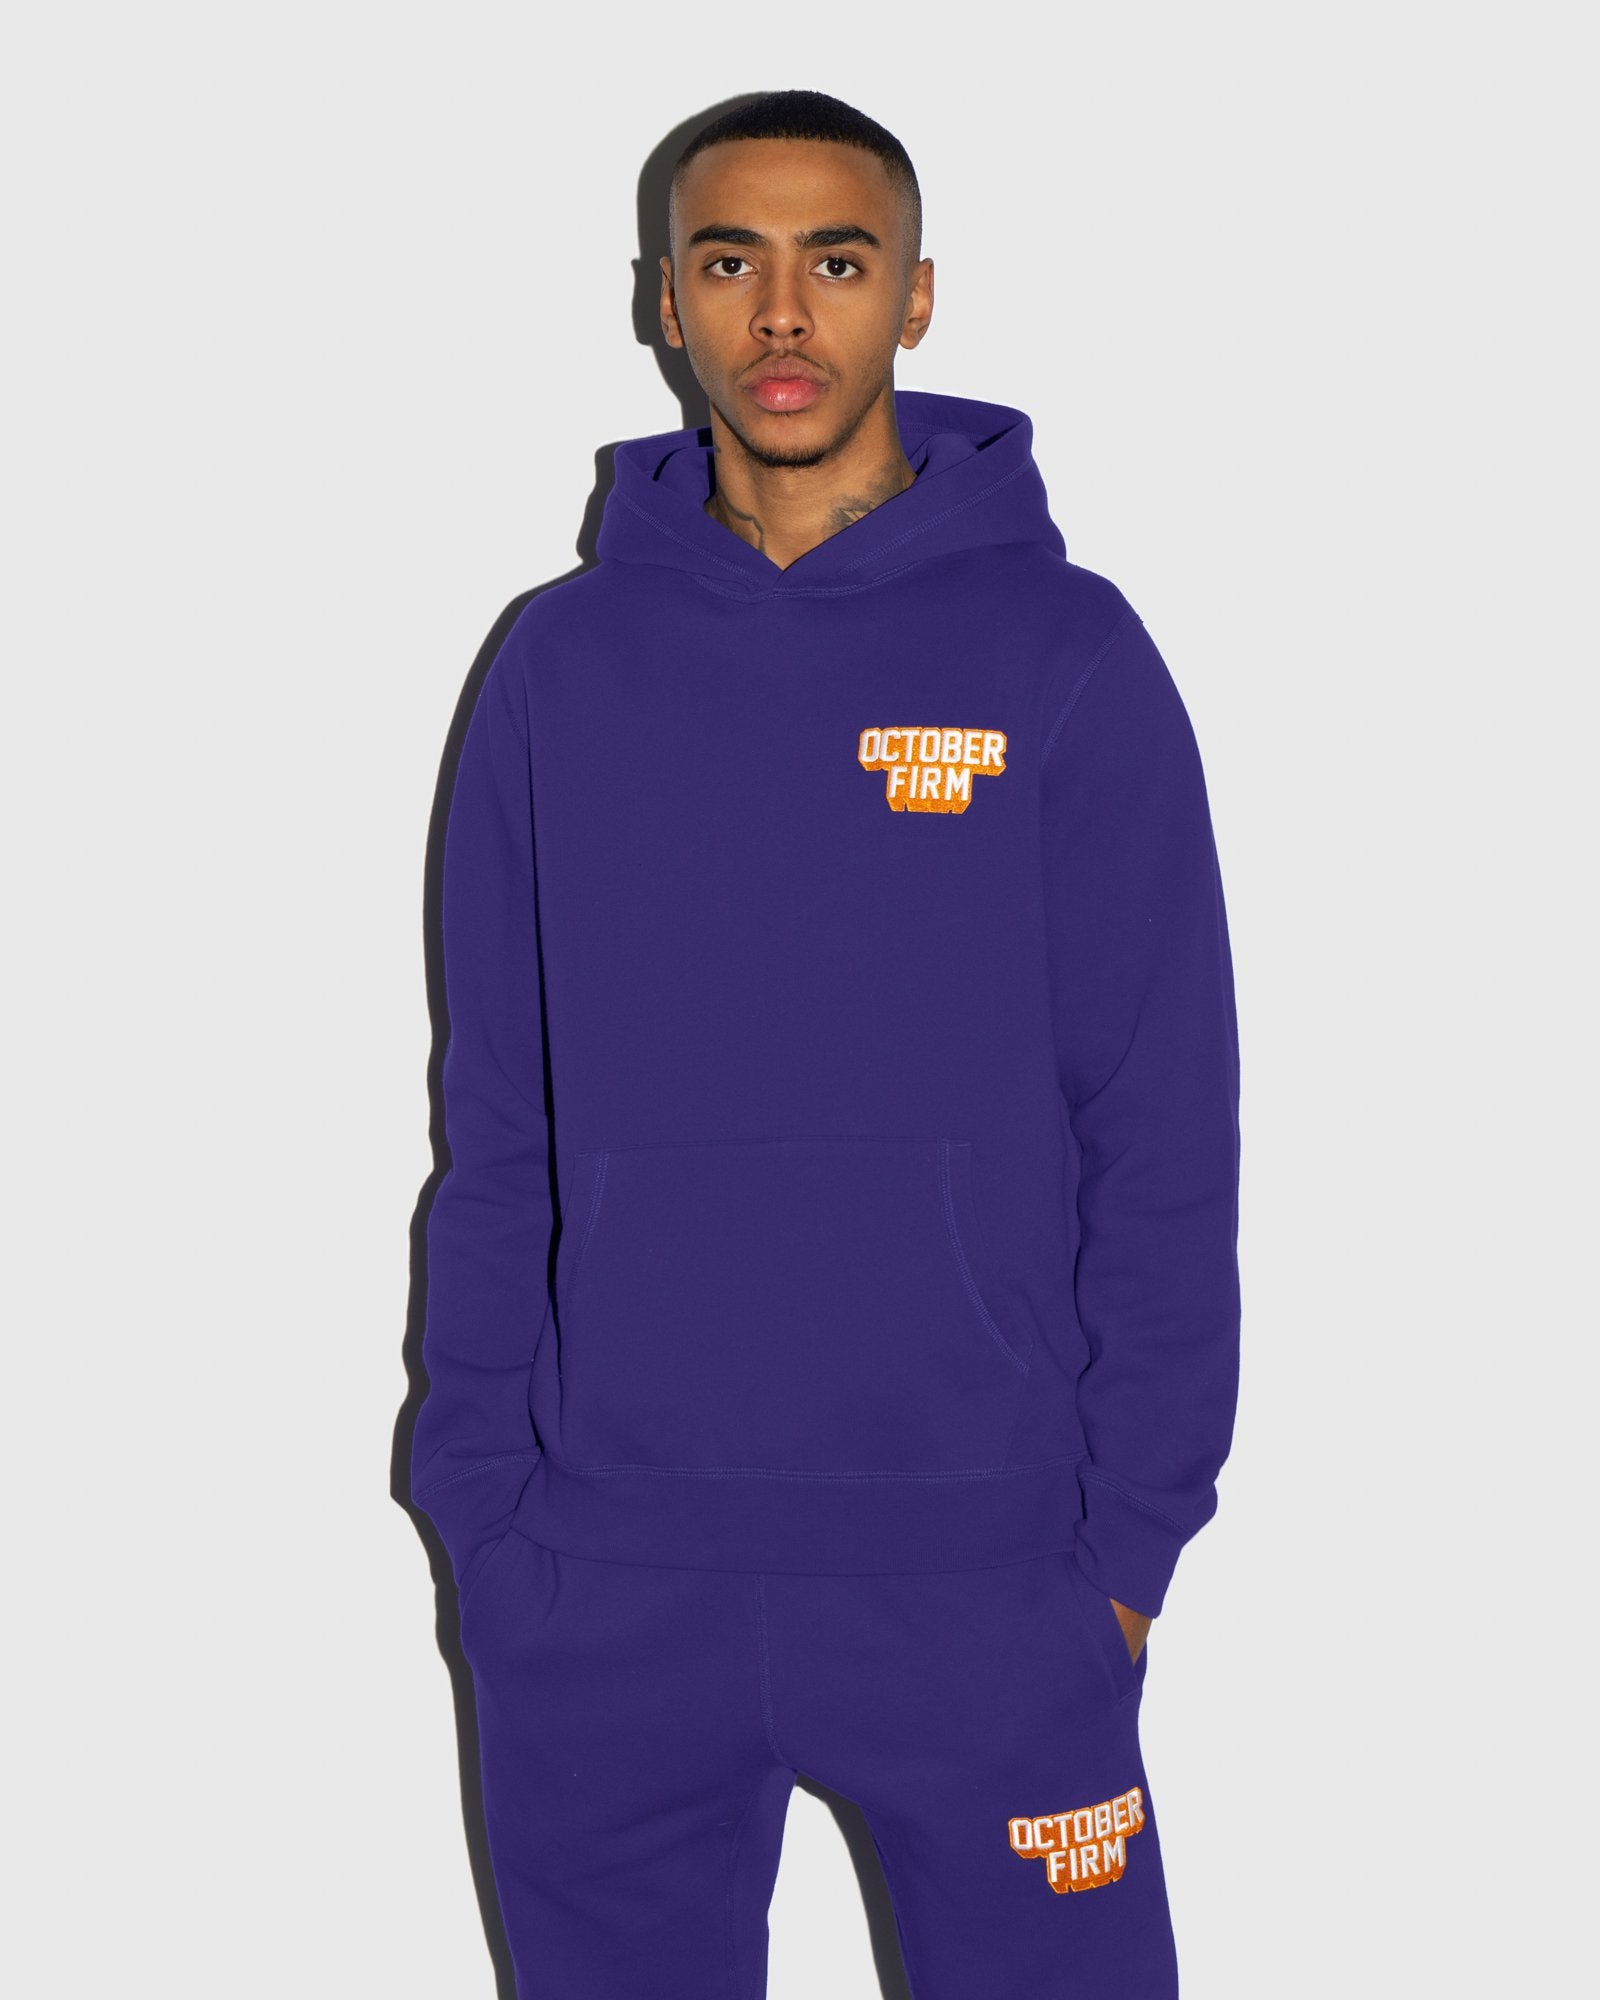 OCTOBER FIRM SHADOW HOODIE - PURPLE IMAGE #2